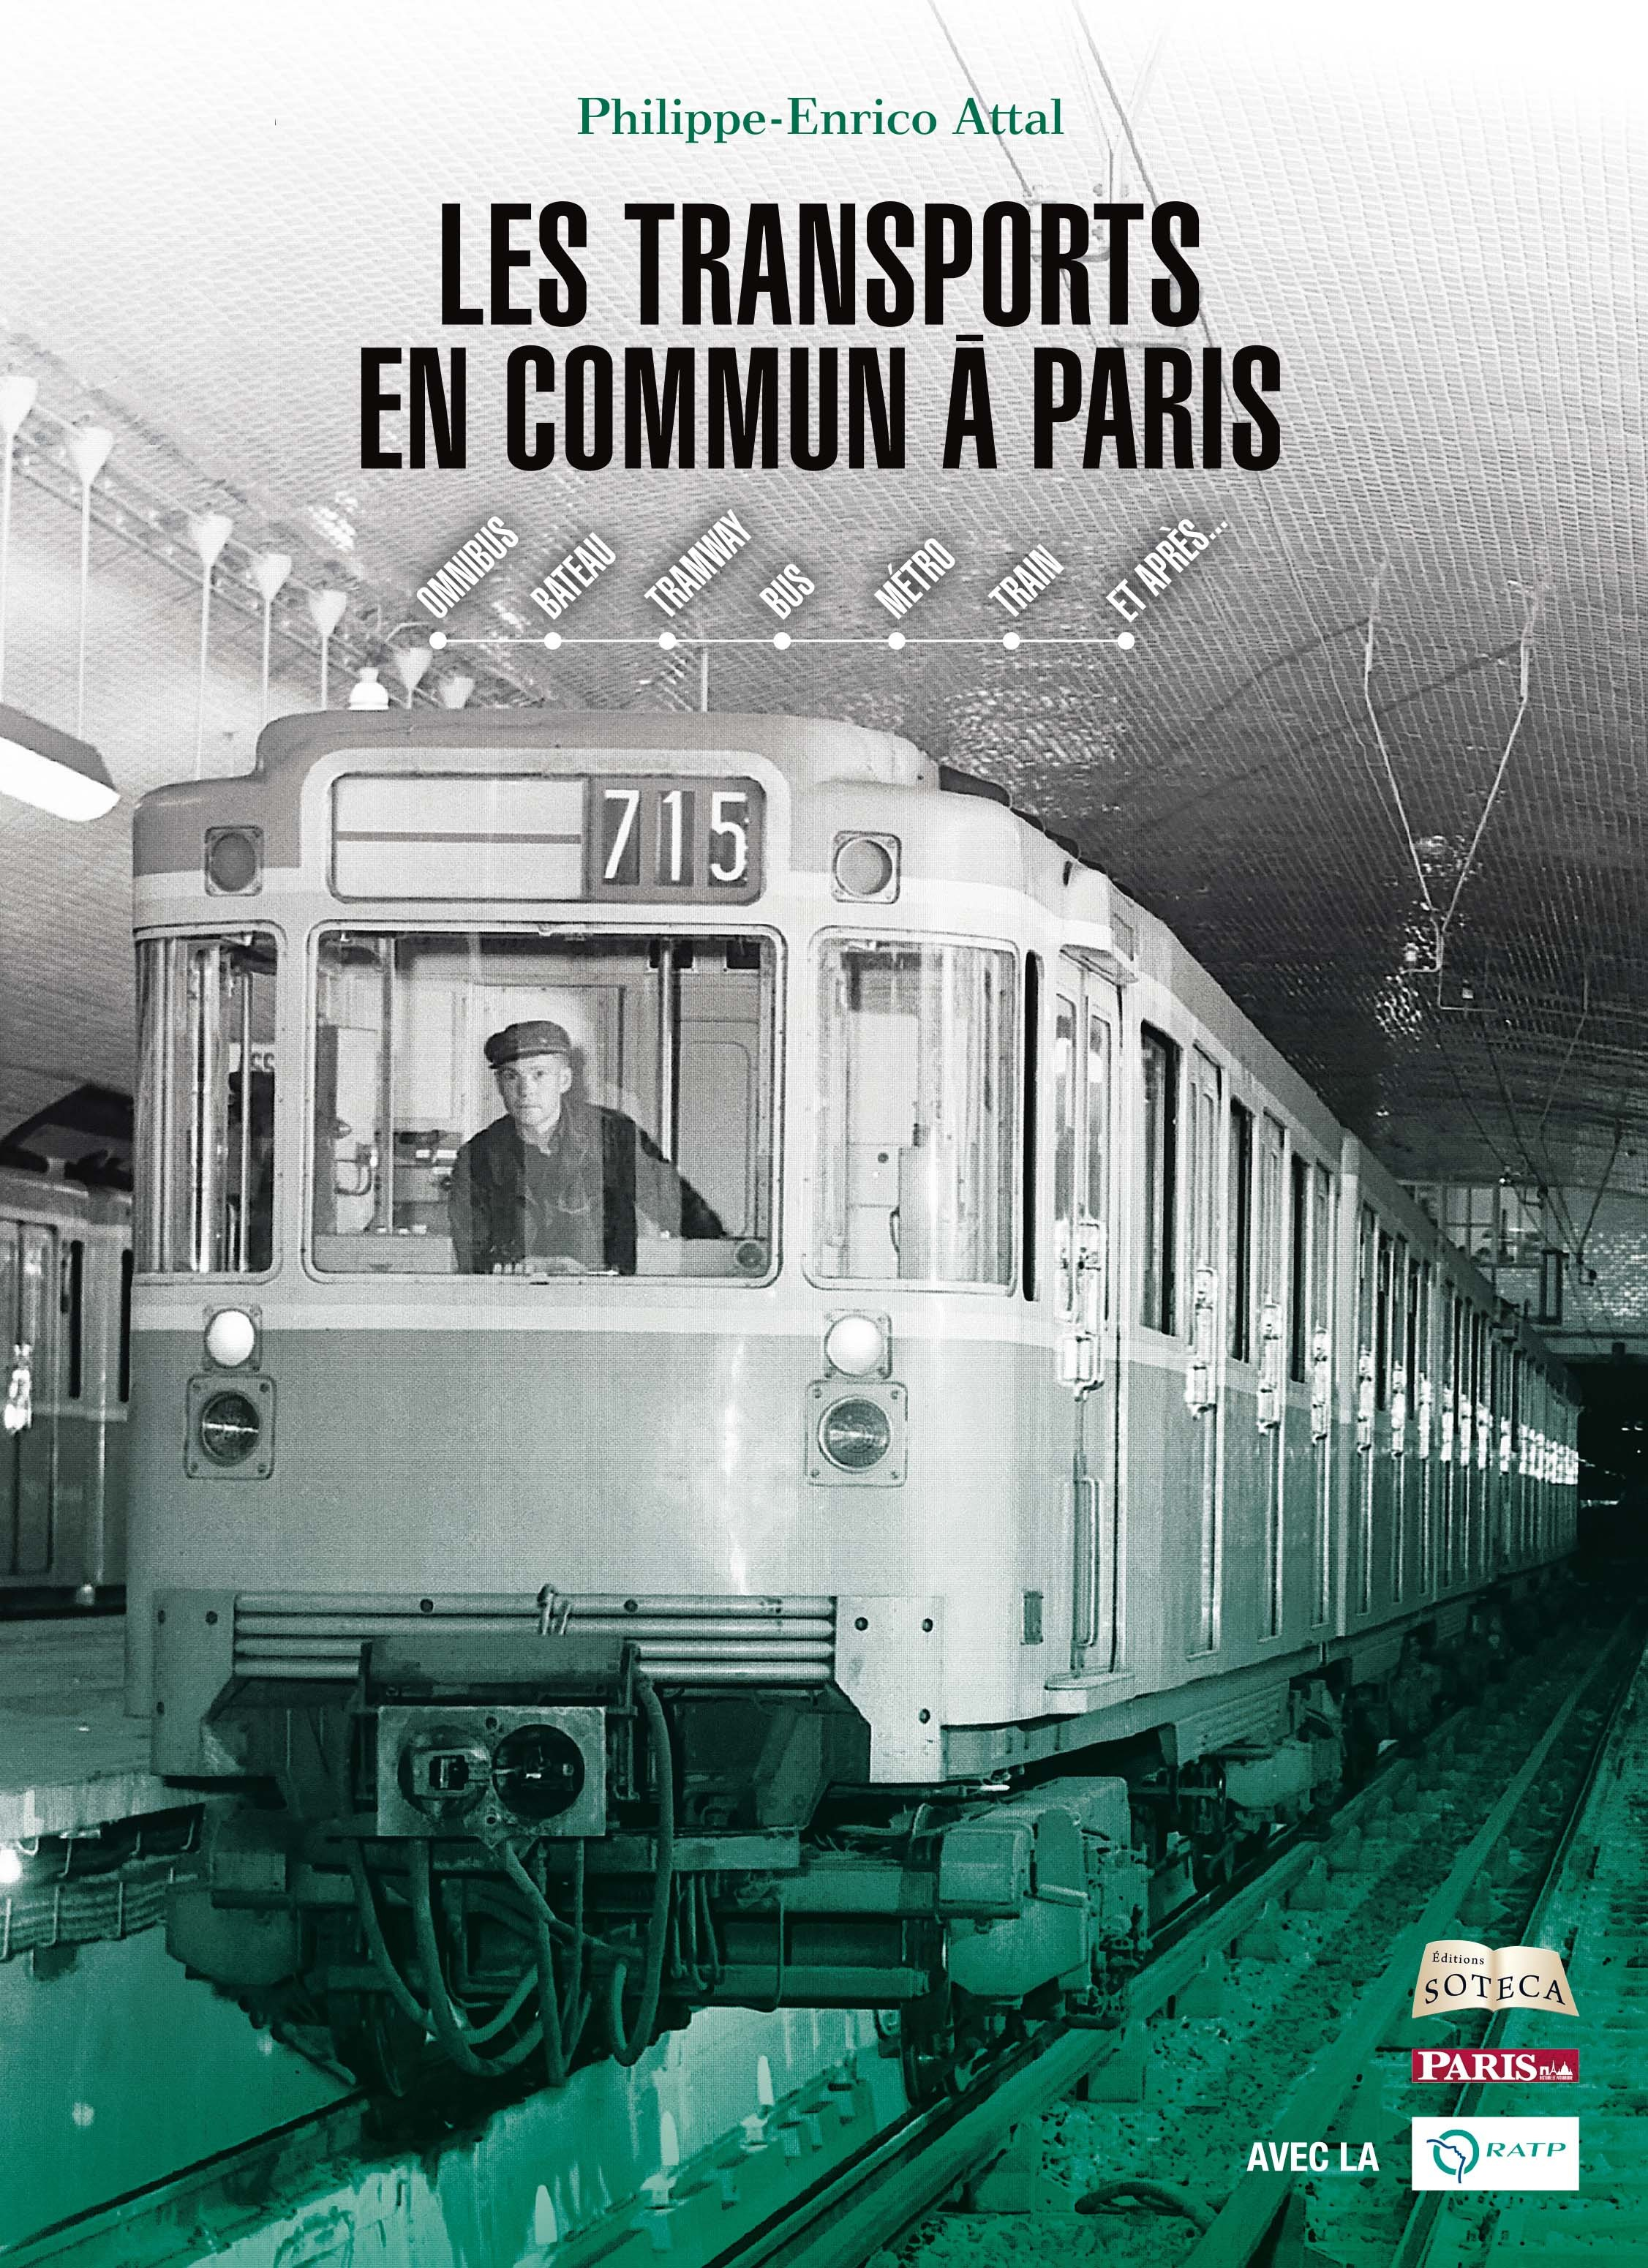 LES TRANSPORTS EN COMMUN A PARIS